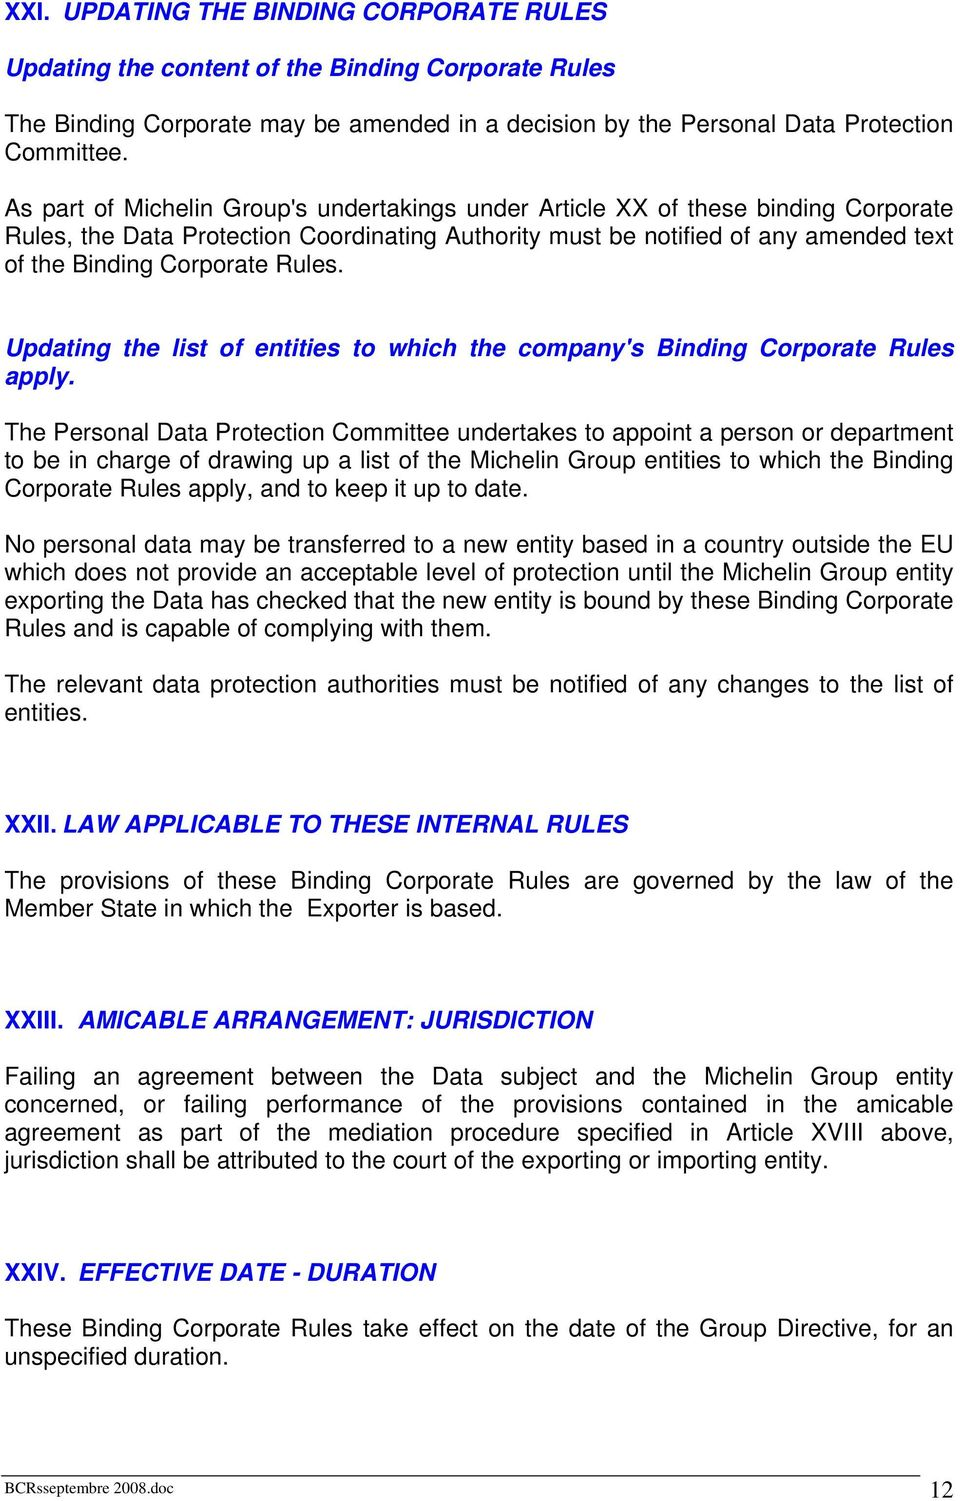 Rules. Updating the list of entities to which the company's Binding Corporate Rules apply.